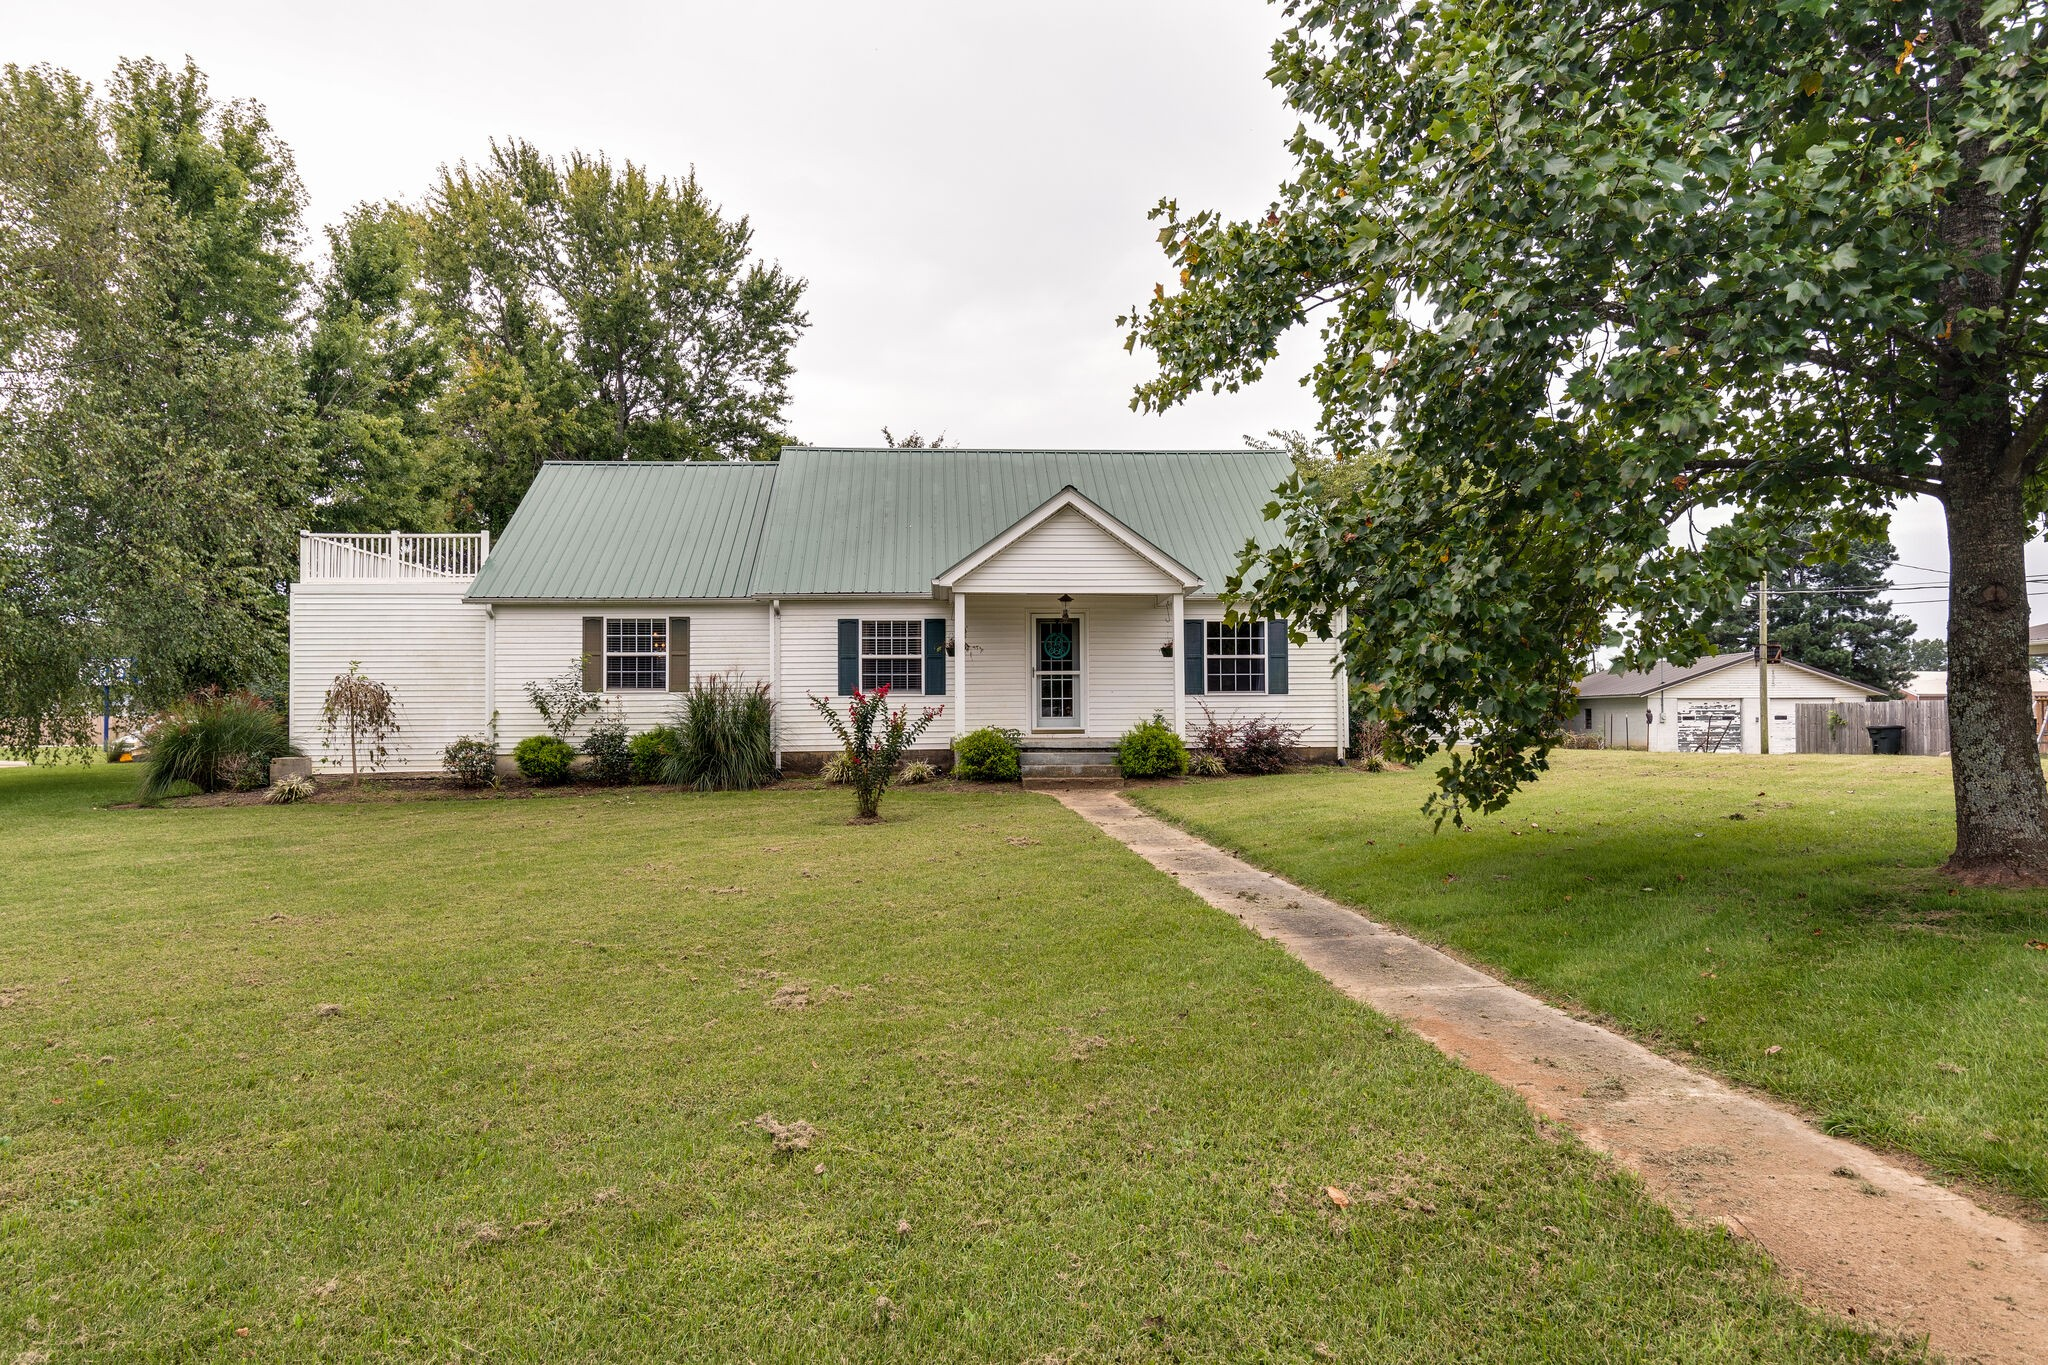 103 Shady St Property Photo - Summertown, TN real estate listing